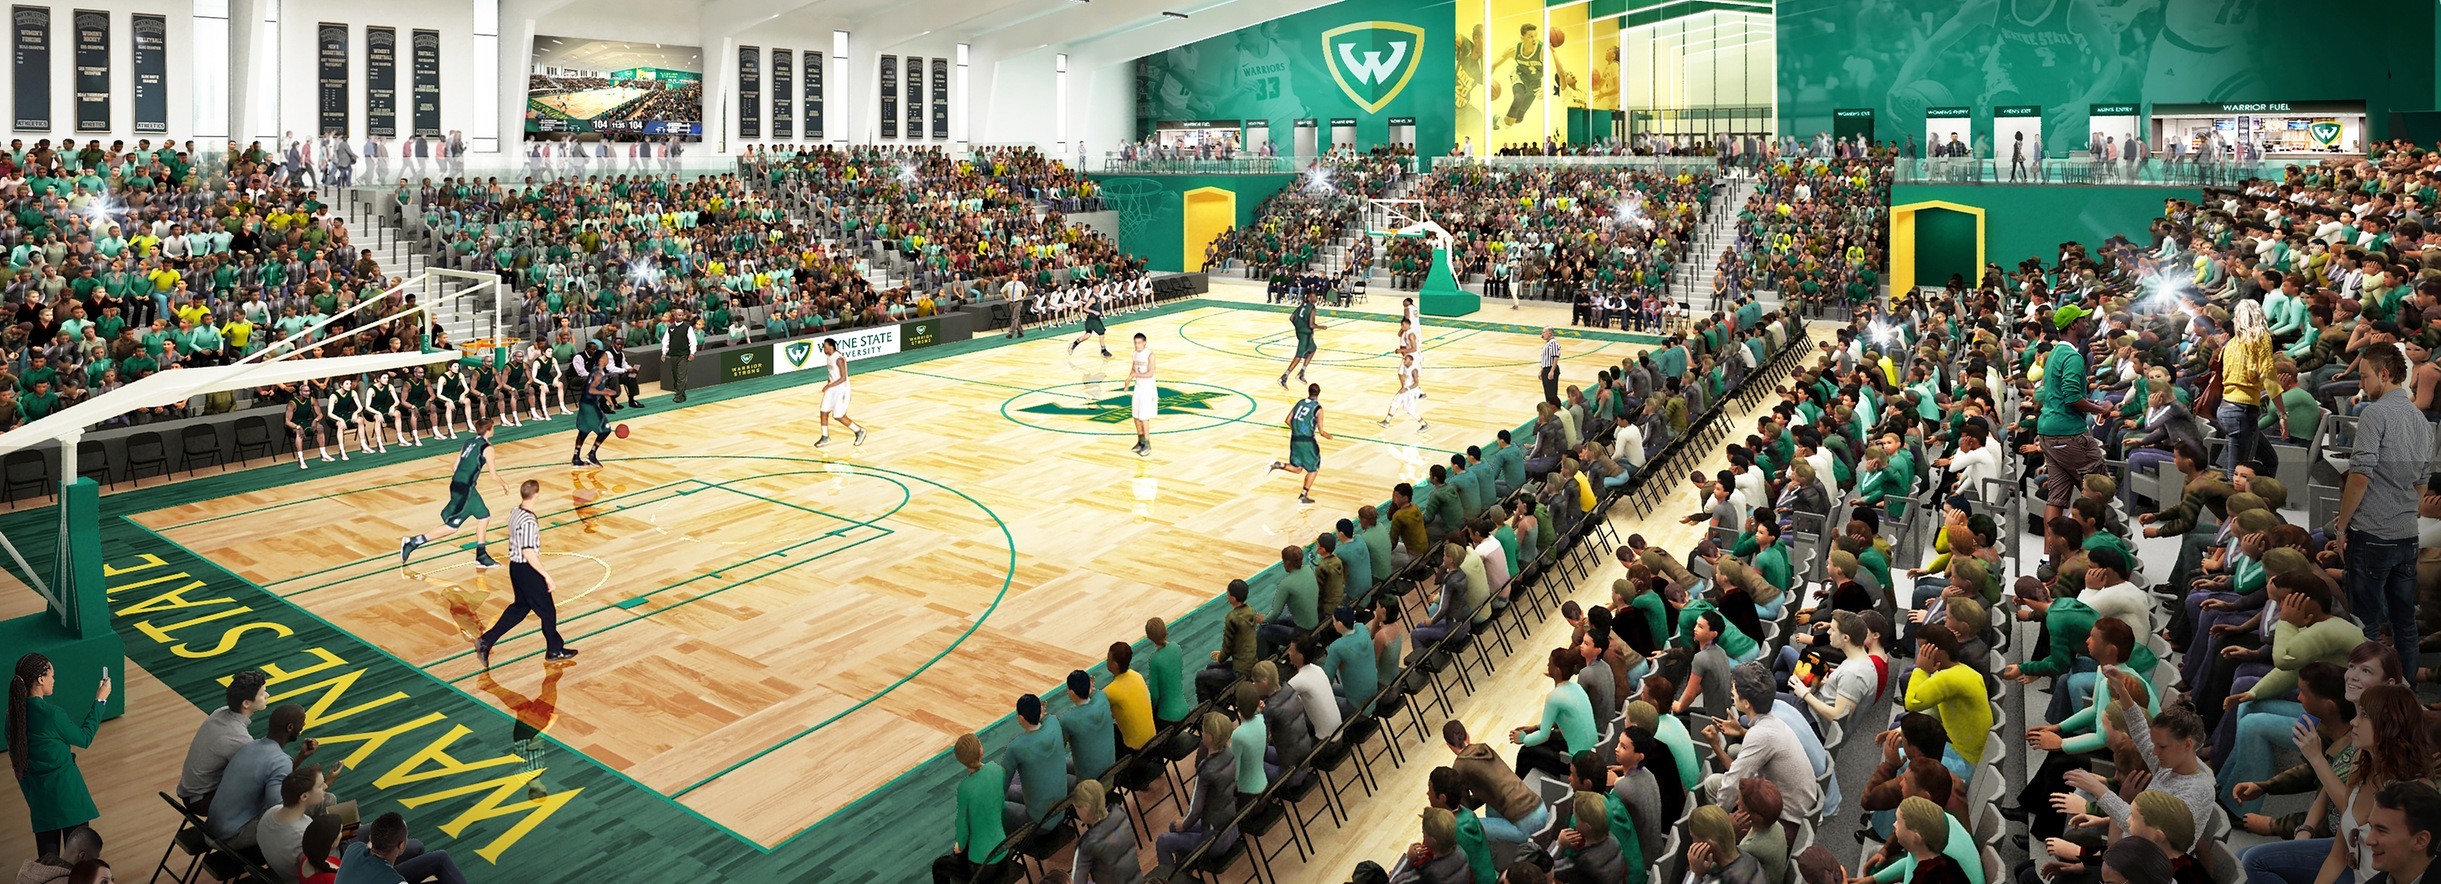 Wayne State announces $25 million arena project